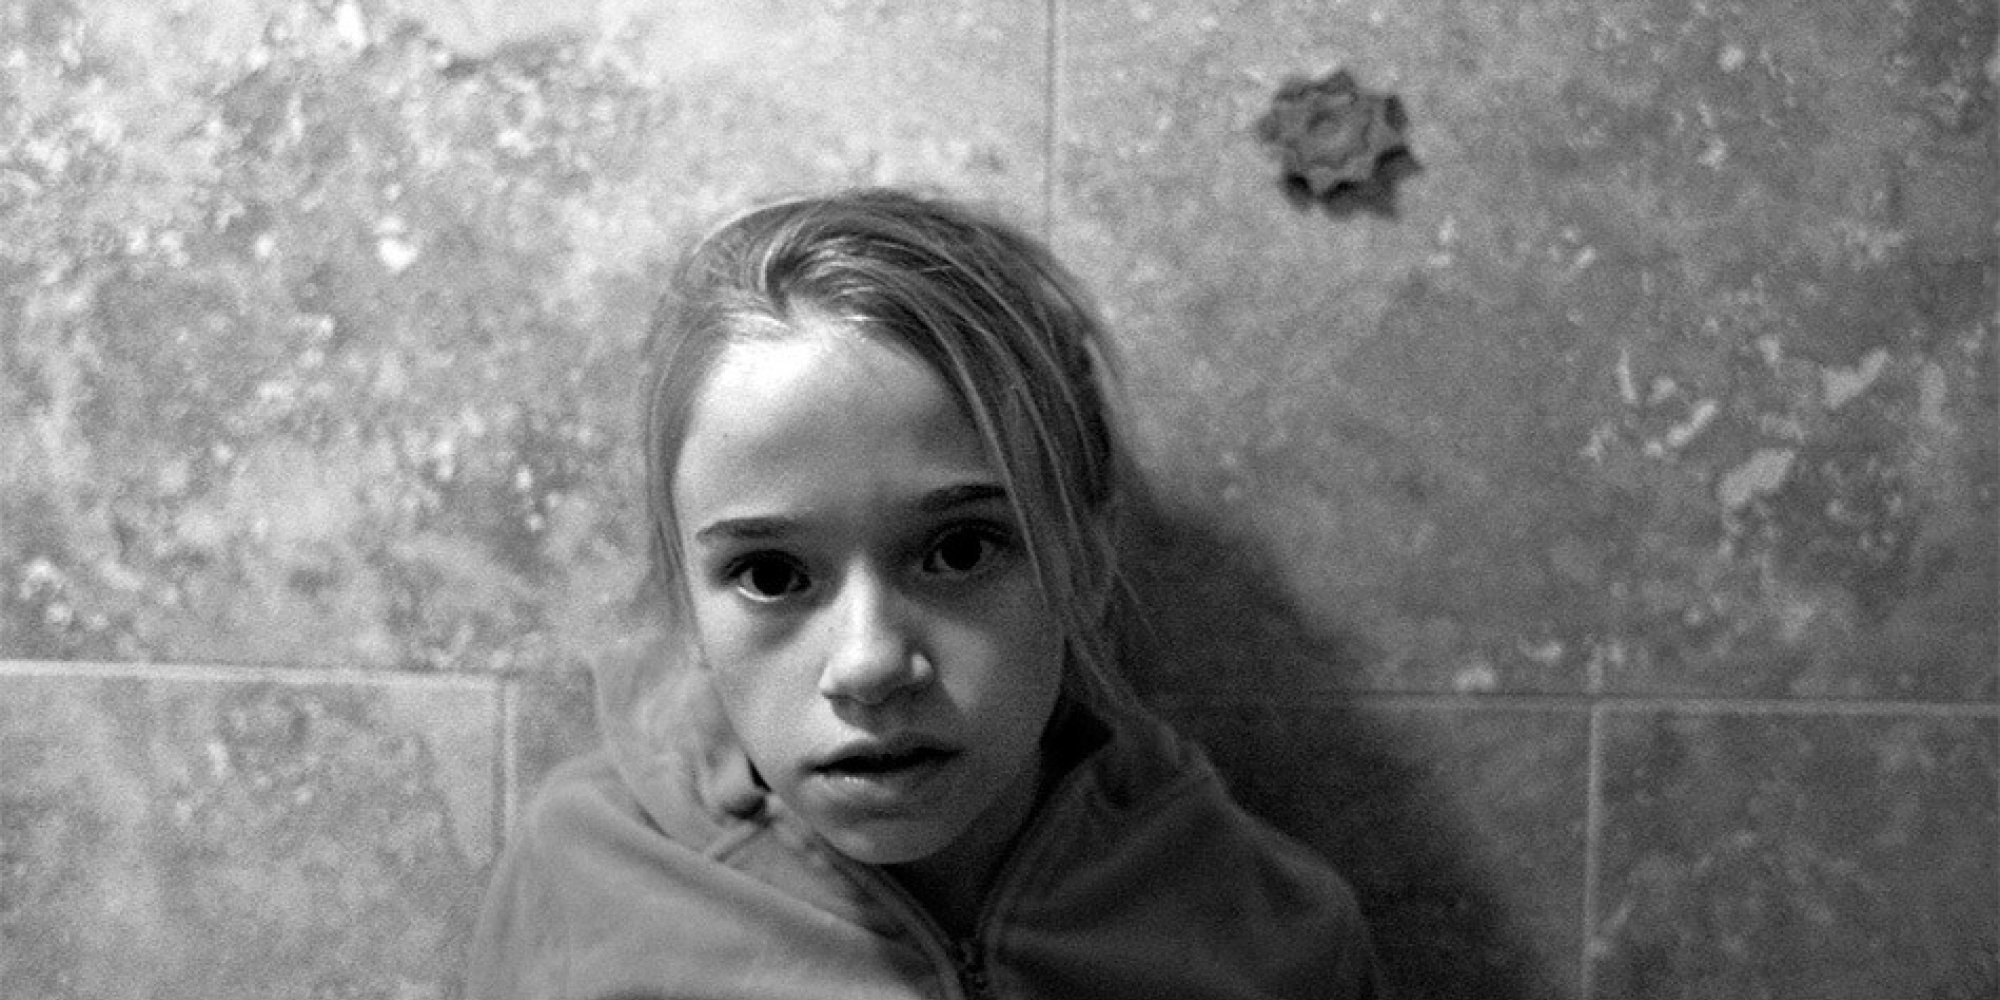 child neglect The family court act of the state of new york defines child neglect or abuse as the act, or failure to act, by any parent or caretaker that results in the death, serious physical or emotional harm, sexual abuse, or exploitation of a child under the age of 18.